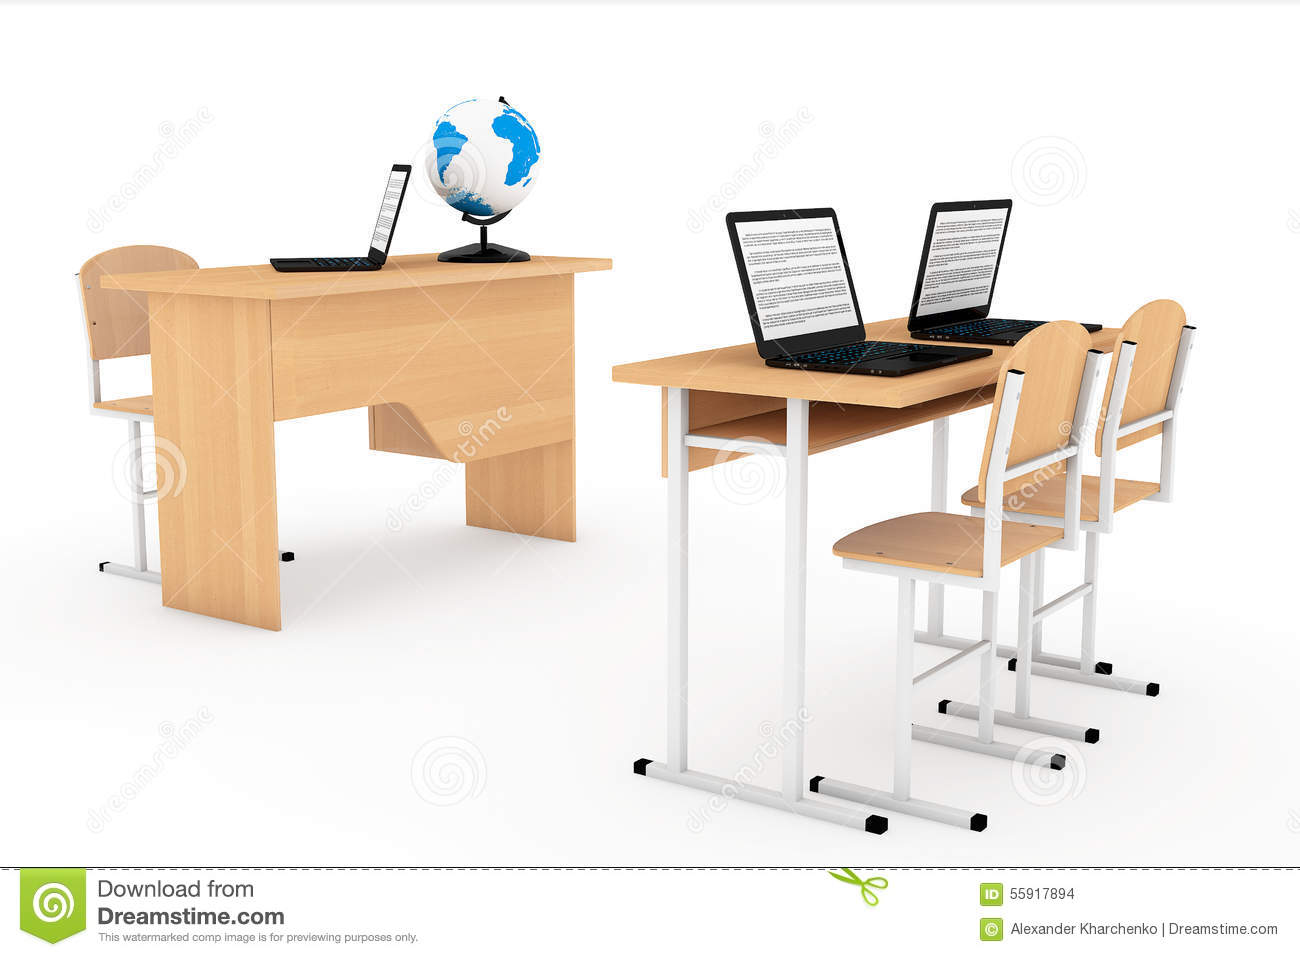 Modern Concept Of Classroom Management : Modern classroom concept school desks with laptops in